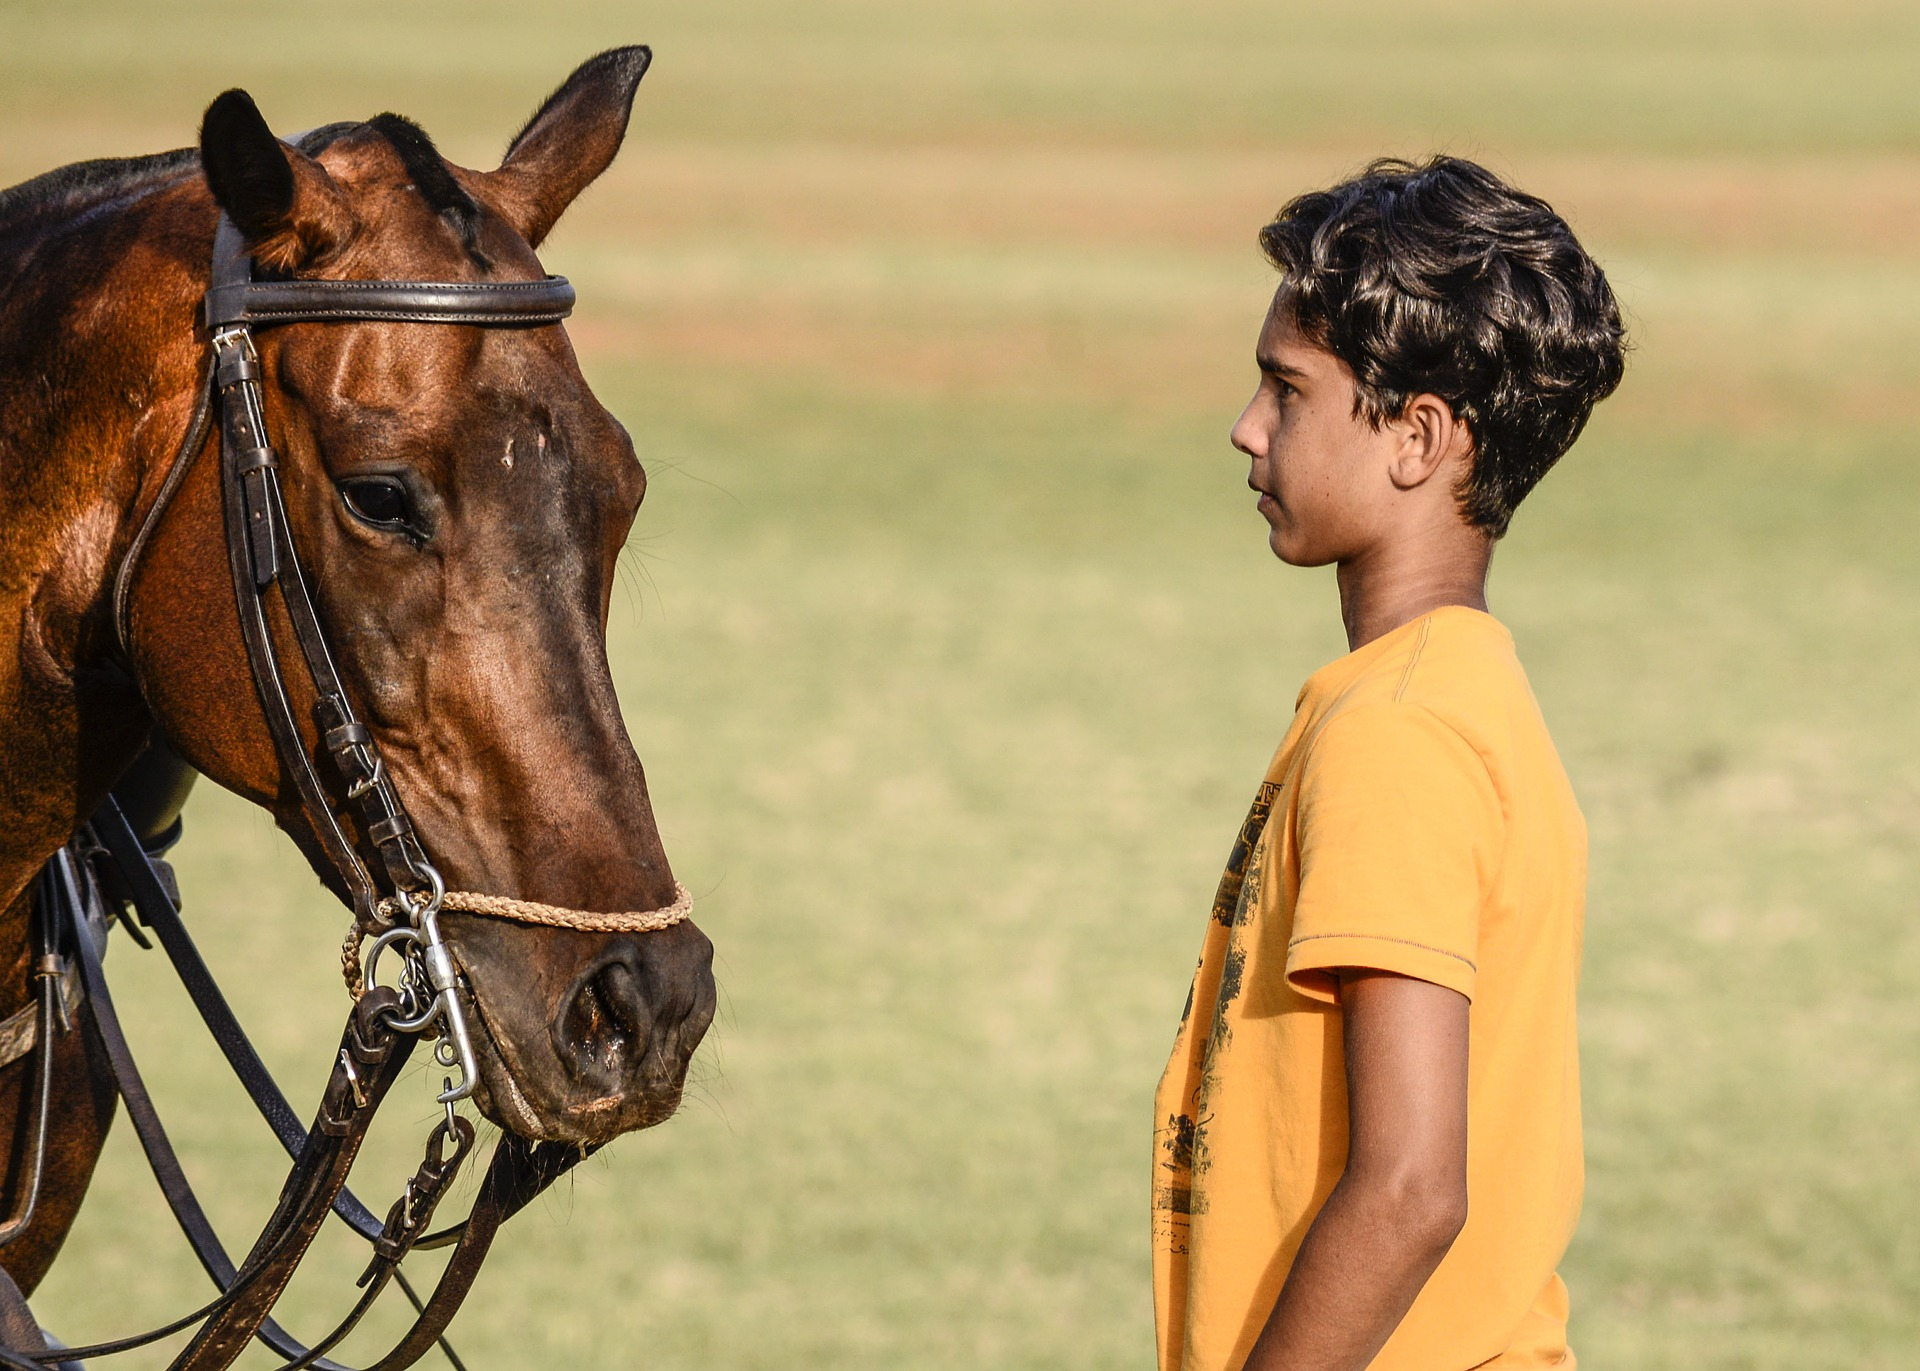 Boy Staring At A Horse used in Equine Therapy